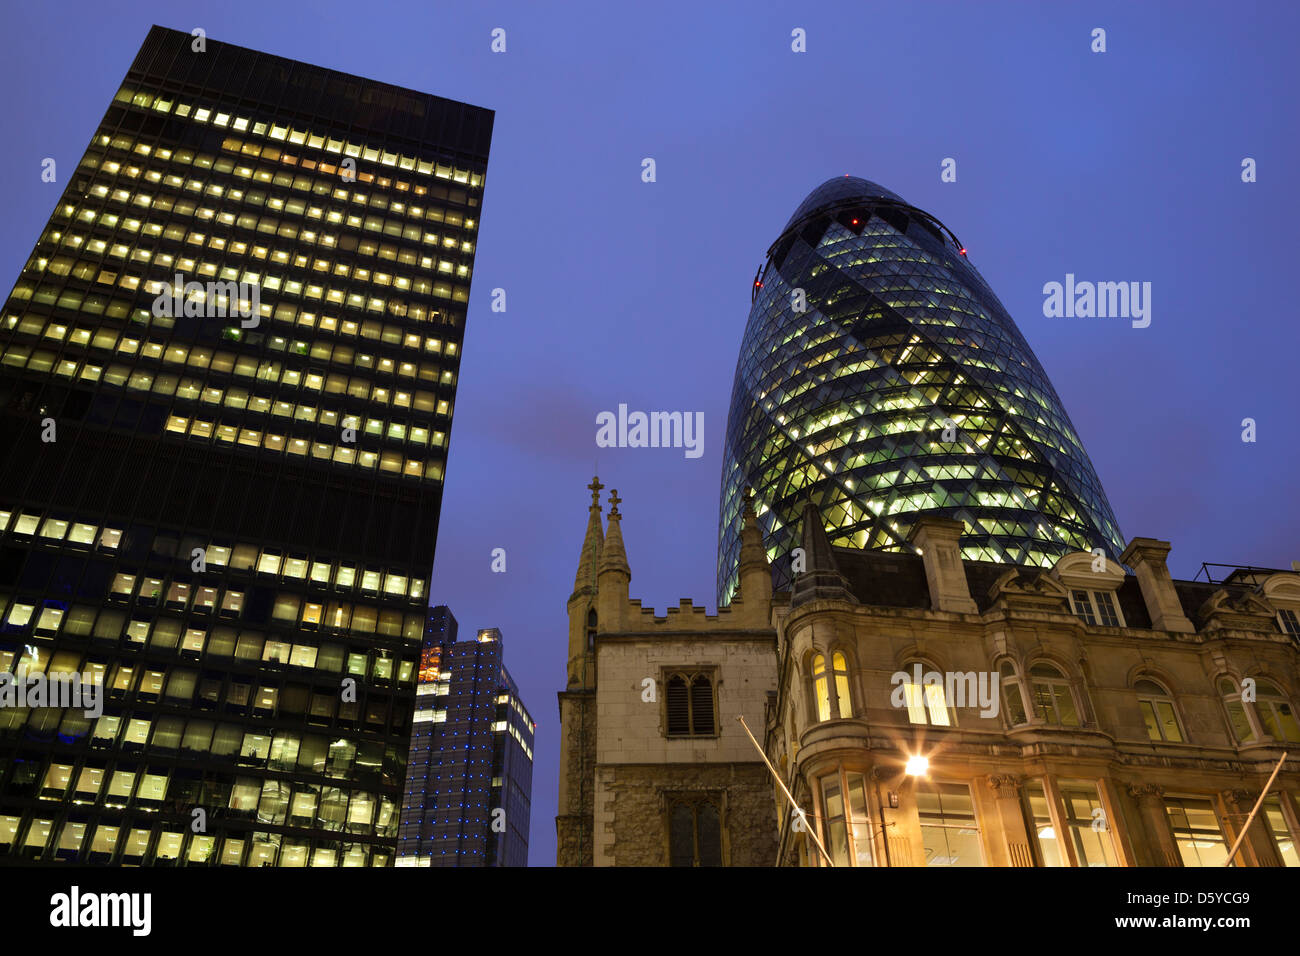 30 St Mary Axe (The Gherkin) viewed from Leadenhall Street - Stock Image